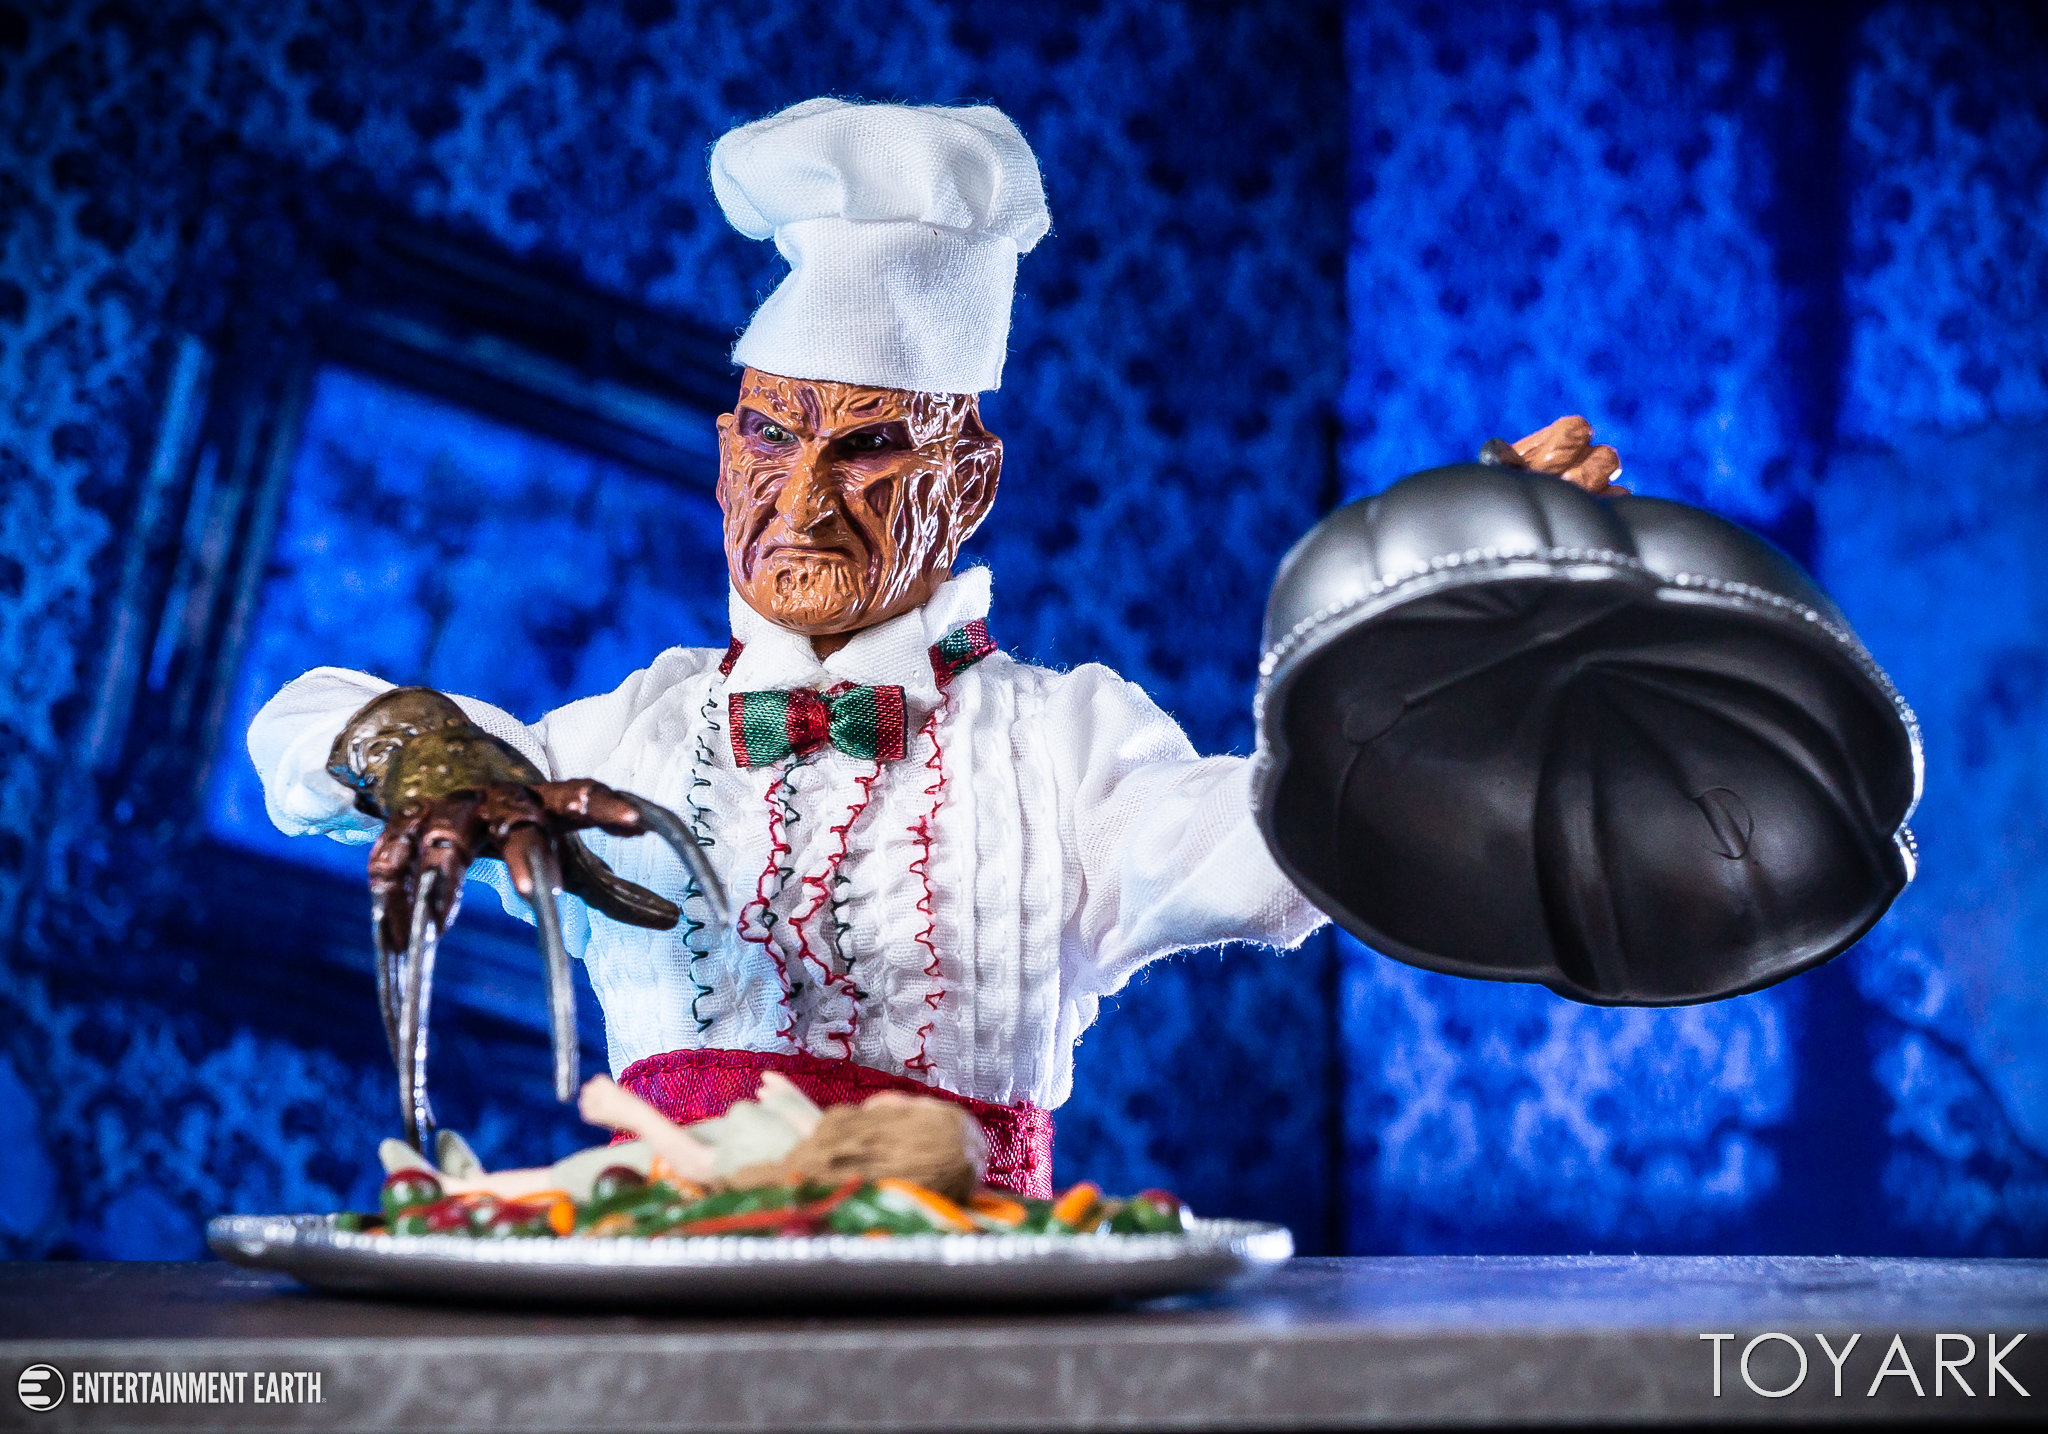 https://news.toyark.com/wp-content/uploads/sites/4/2018/10/Chef-Freddy-NECA-028.jpg